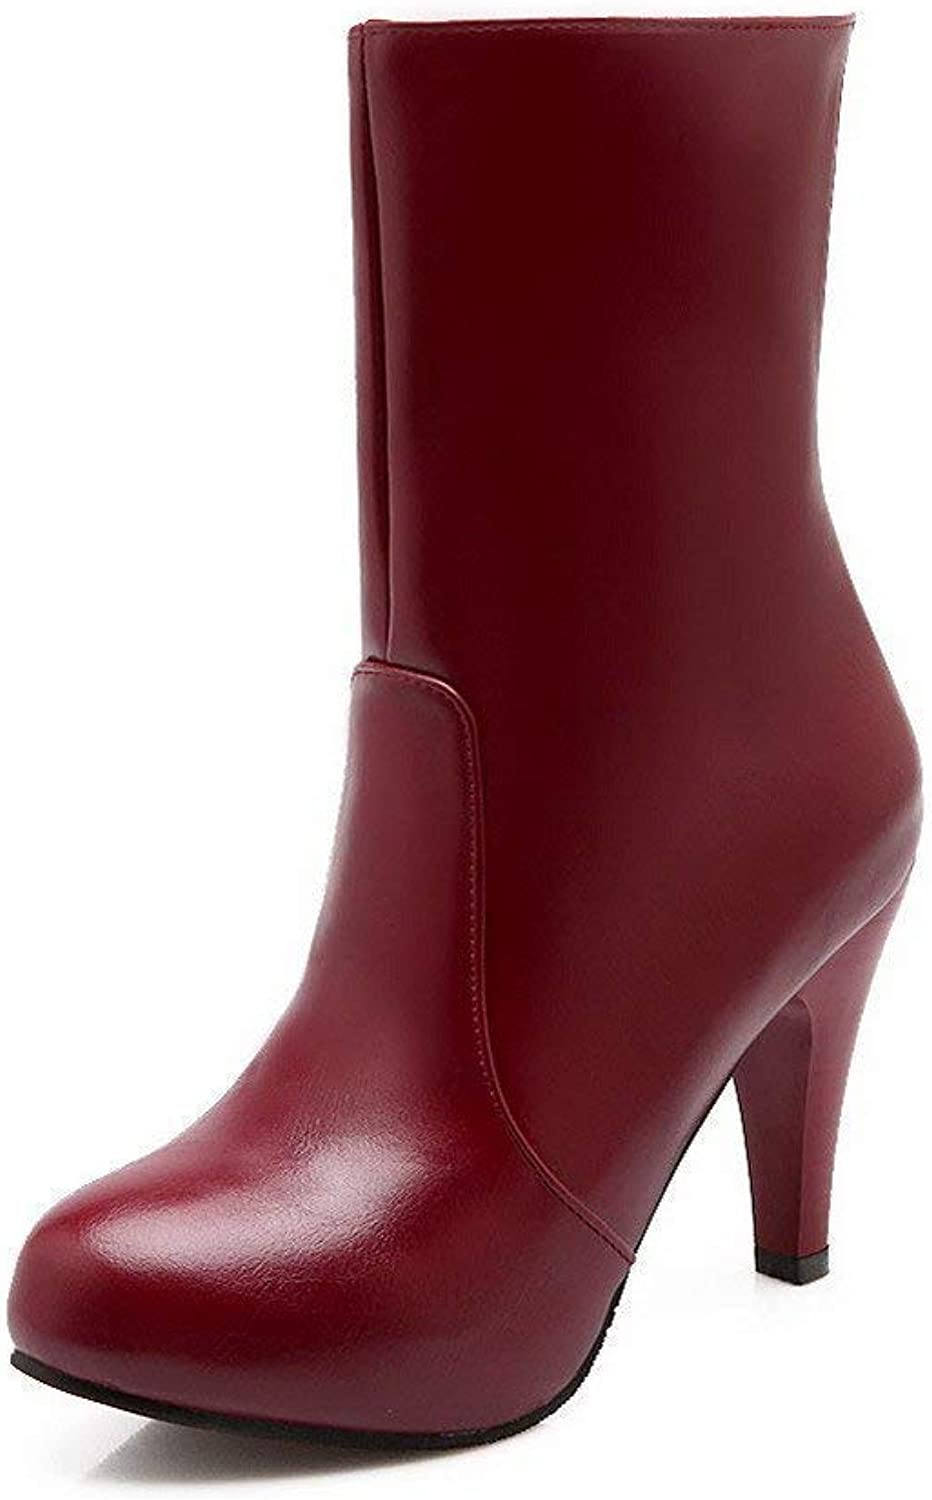 PRETTYHOMEL Women's High-Heels Solid Closed Round Toe Soft Leather Zipper Boots(0 0)